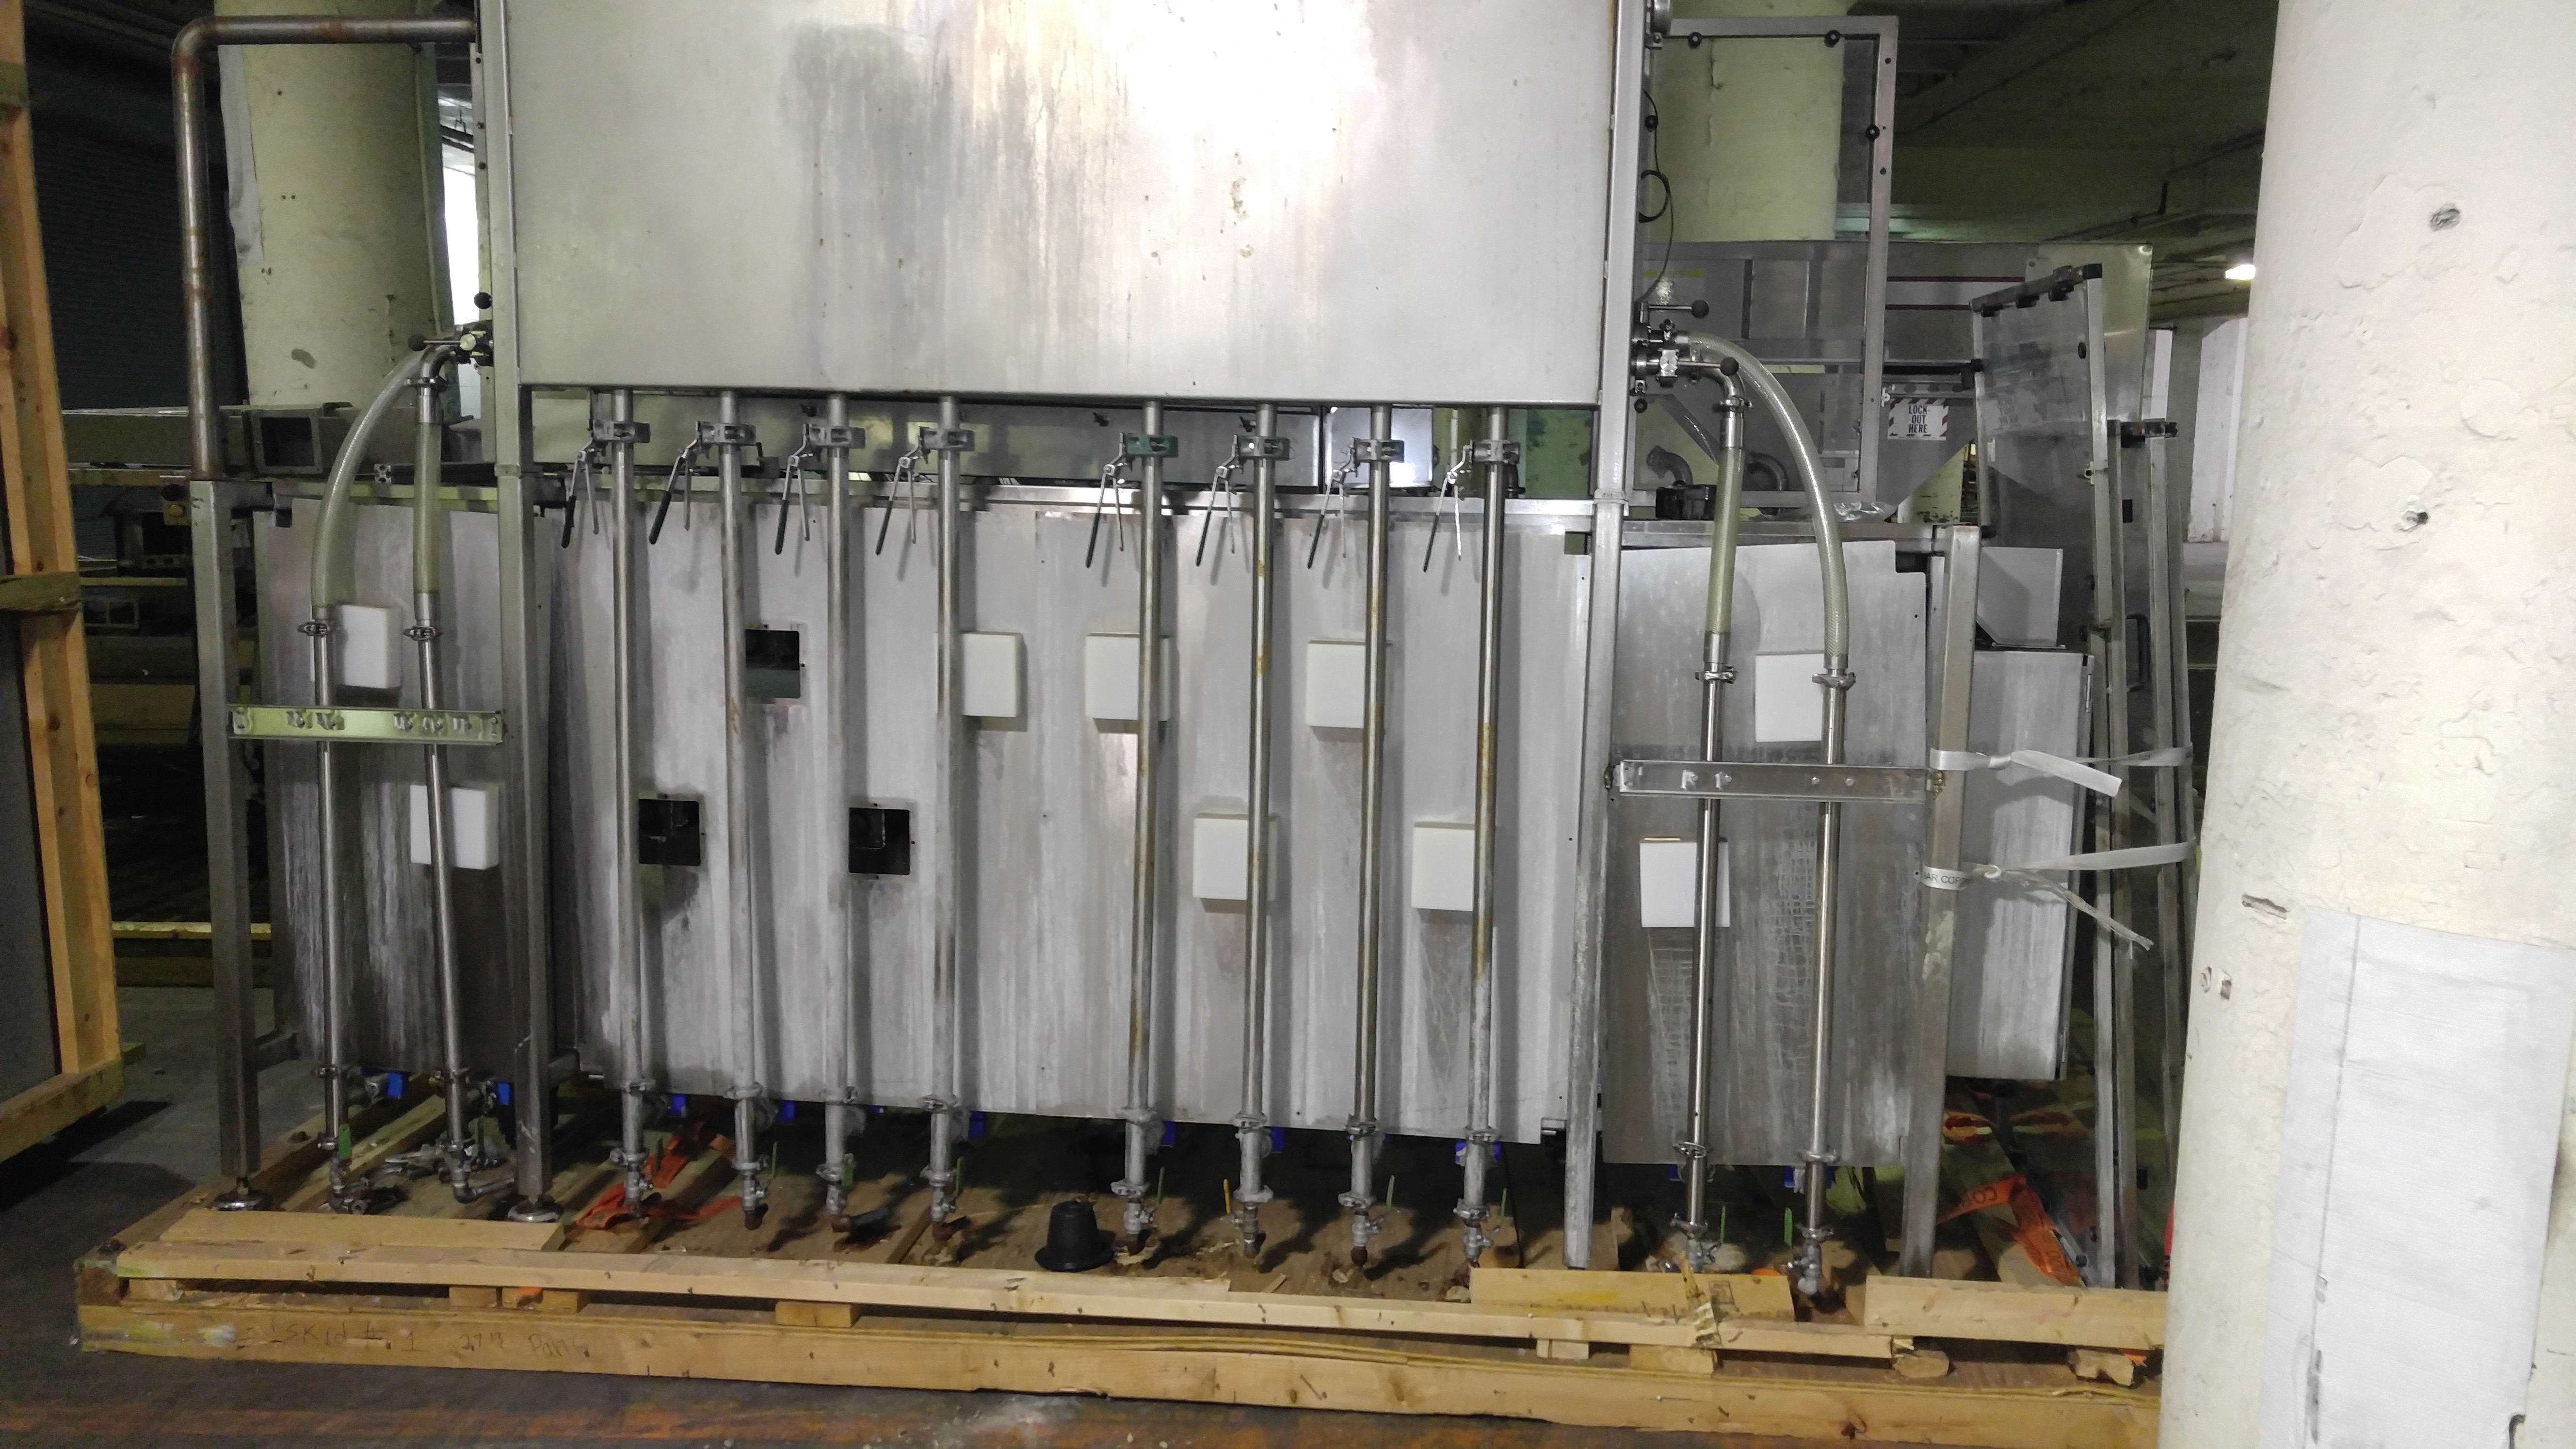 Lot 58 - Fillimatic with Head tank & (12)Waukesha Cherry Burrell Pumps Model 060 Stainless Steel displacement